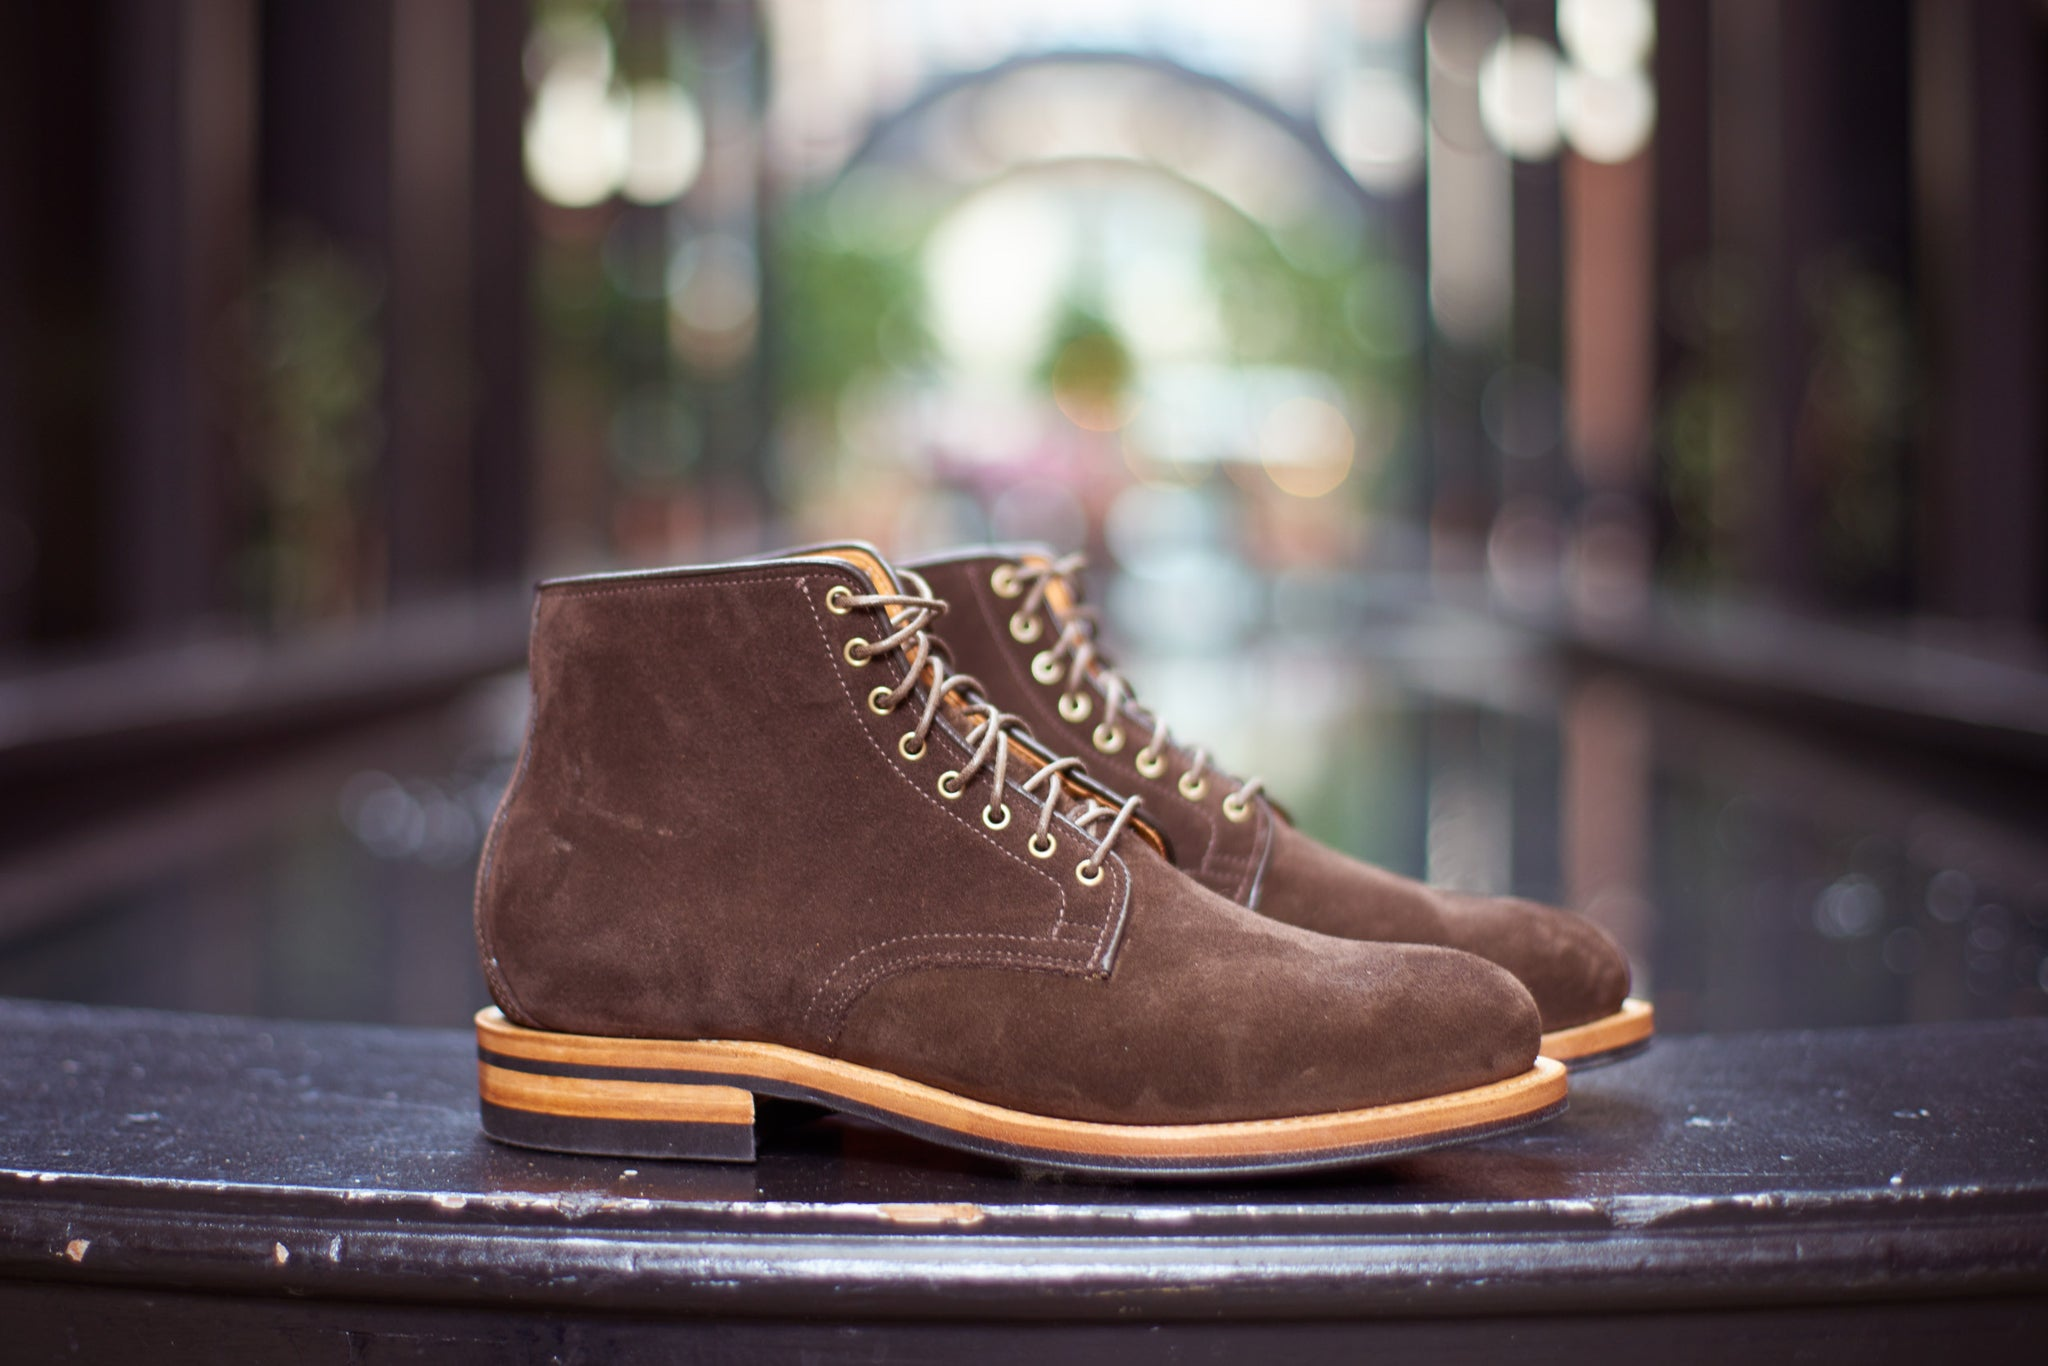 Viberg Invasion Division Road Inc Cut Engineer Shoes Safety Boots Iron Suede Leather Soft Brown The Bernhard Chukka Boot